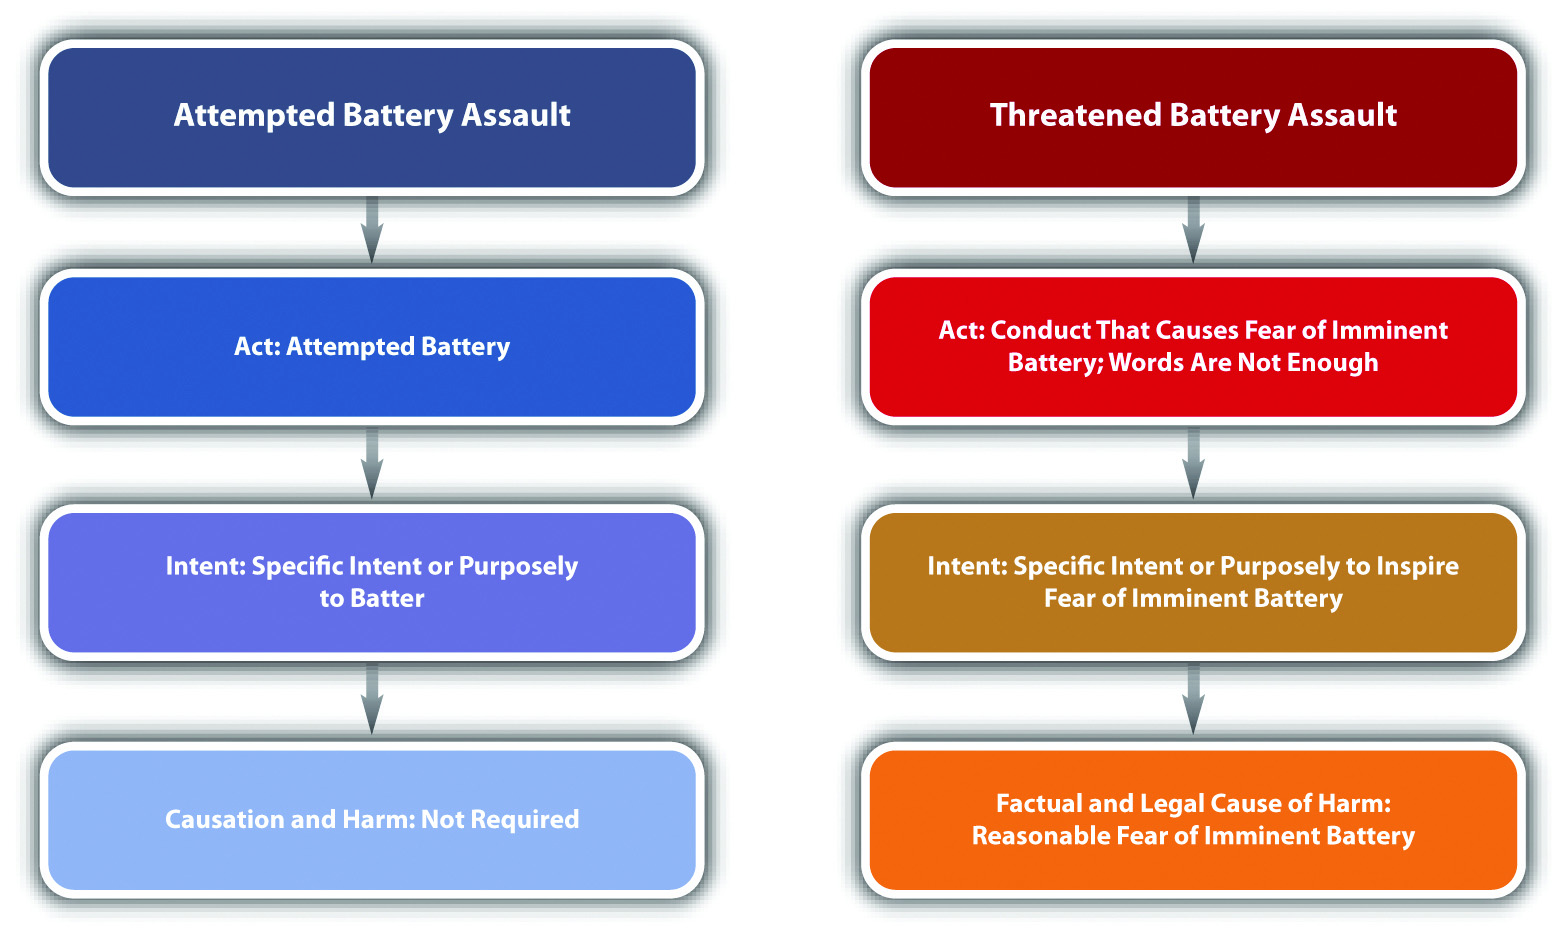 Diagram of Assault Elements